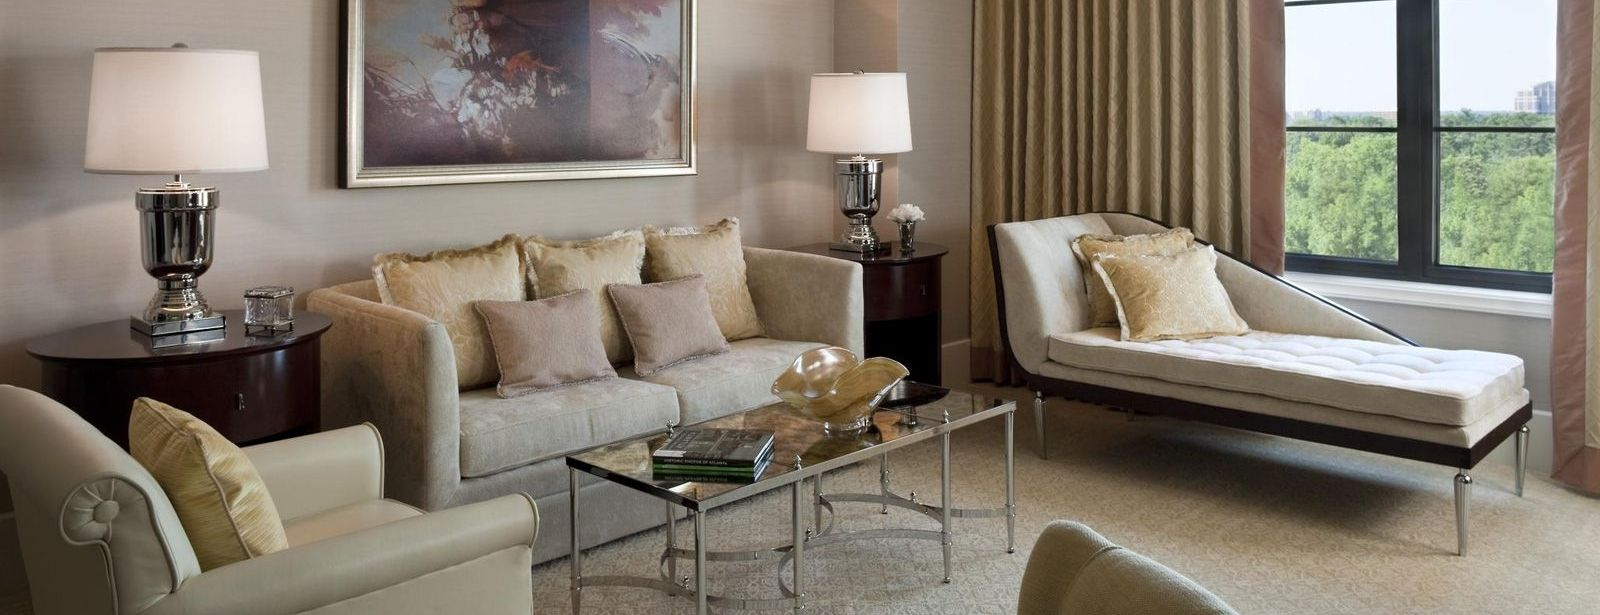 St. Regis Suite | The St. Regis Atlanta